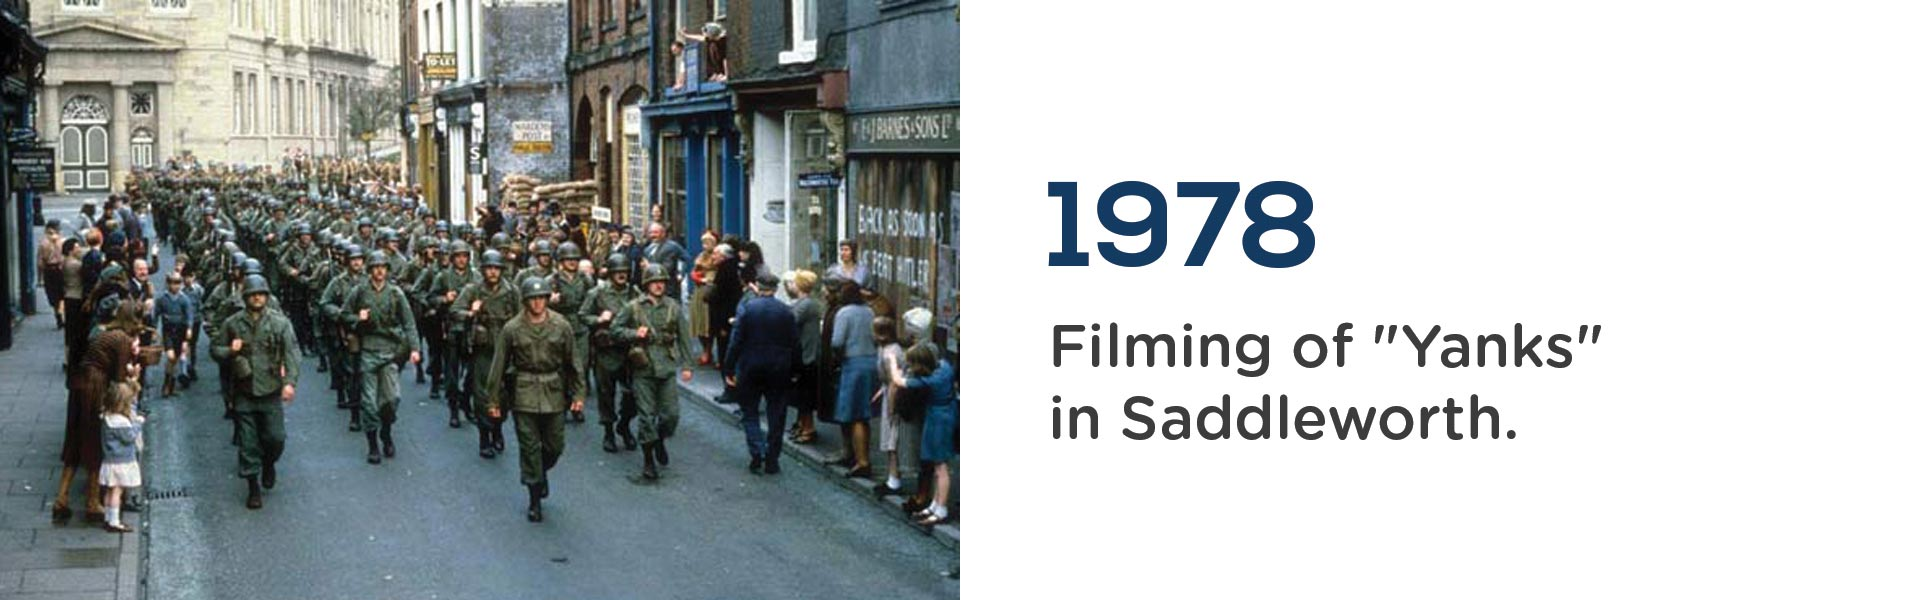 Yanks was filmed in Saddleworth in 1978.Wrigley Claydon Solicitors, Trusted for 200 years